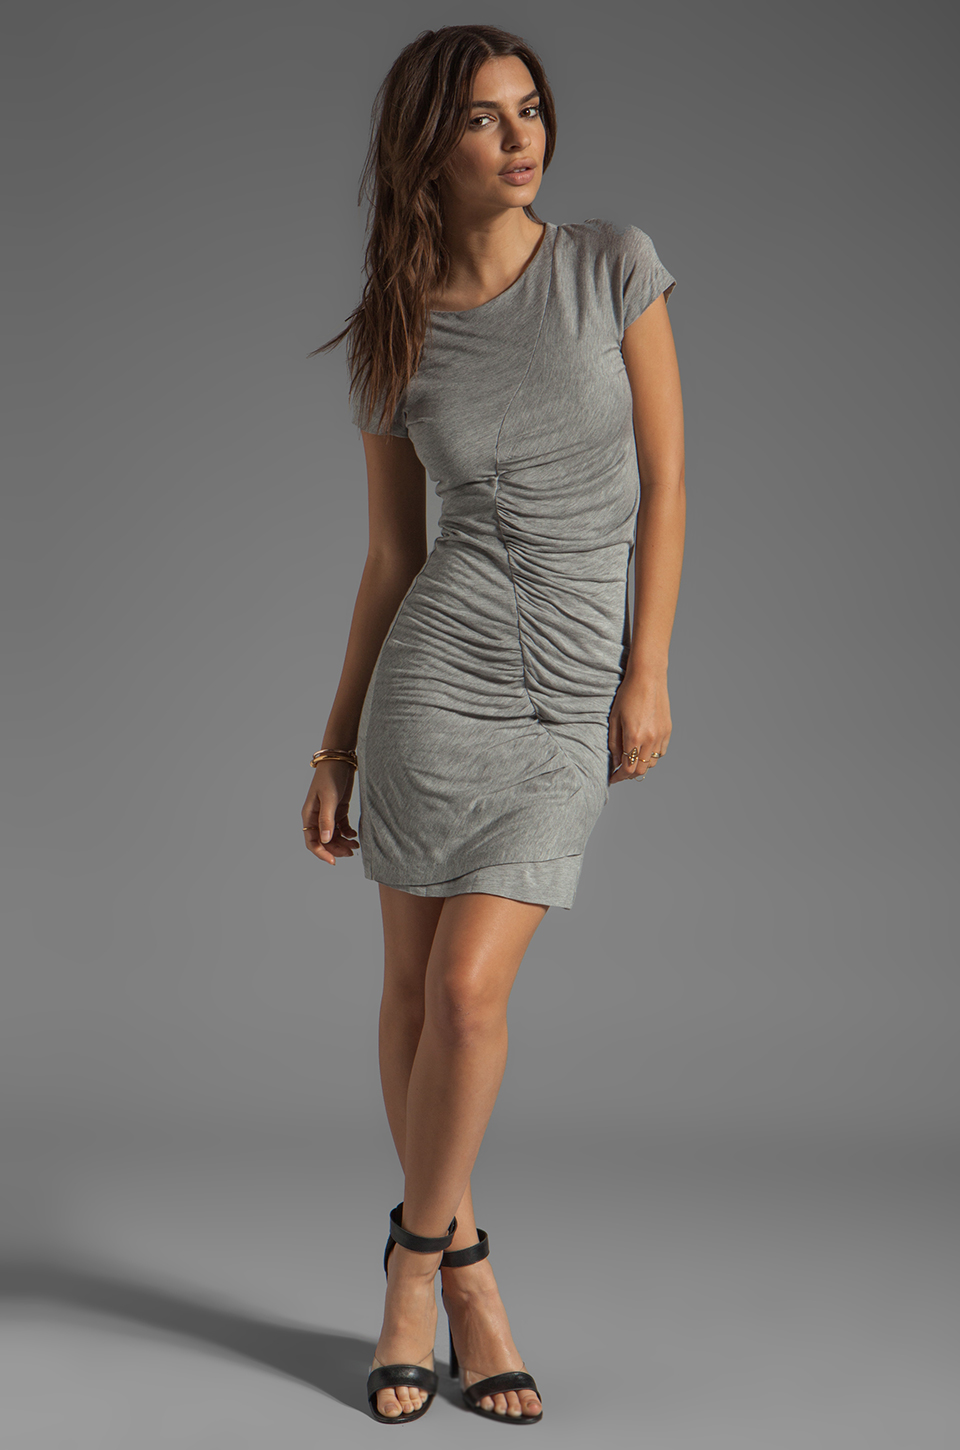 Diane von Furstenberg Meela Re-Twisted Dress in Grey